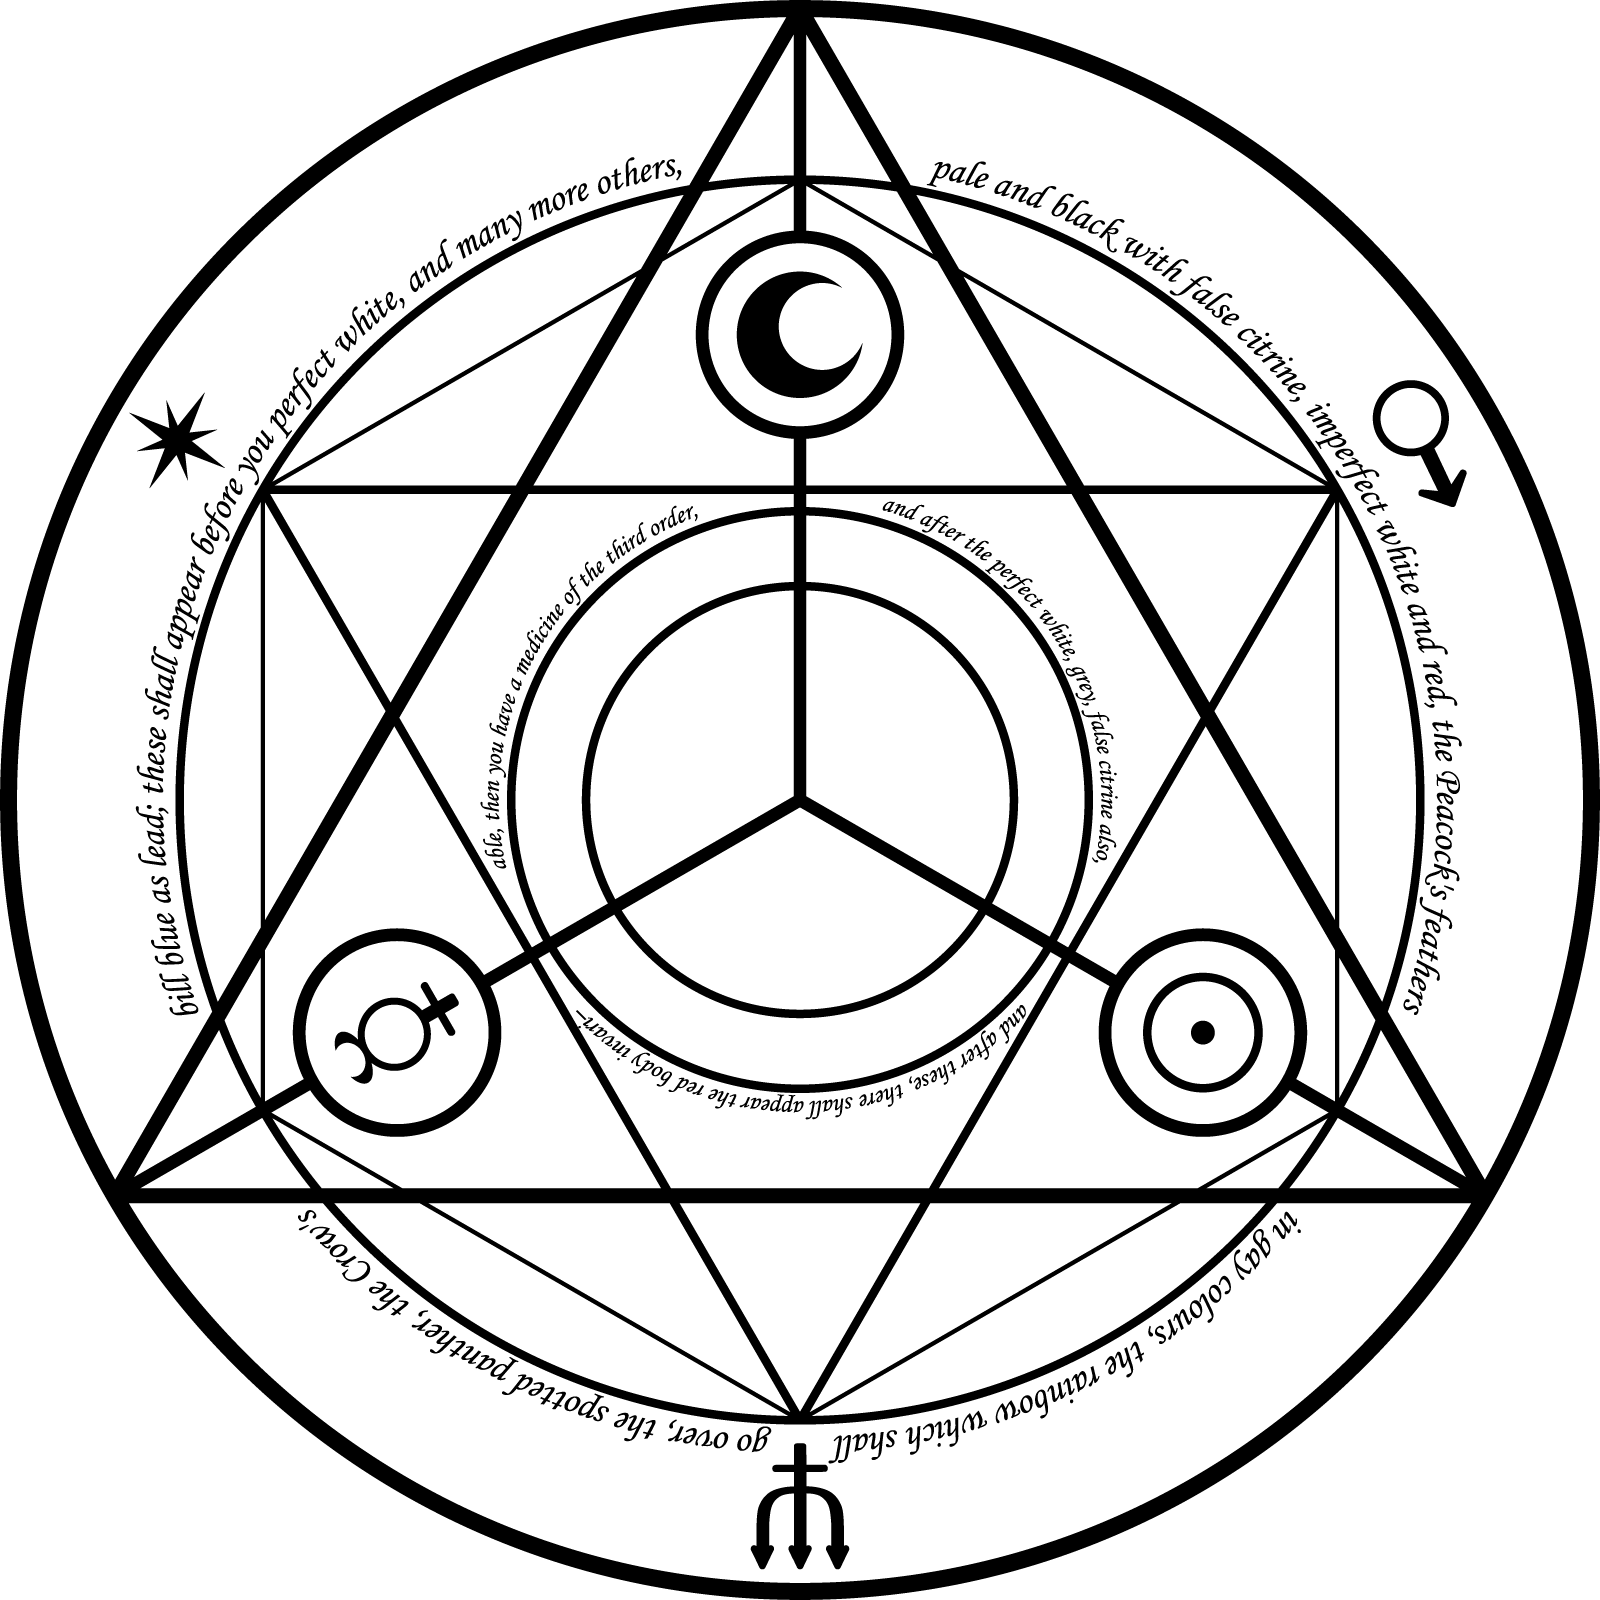 Alchemy Alchemy Symbols And Tattoo Ideas And Designs